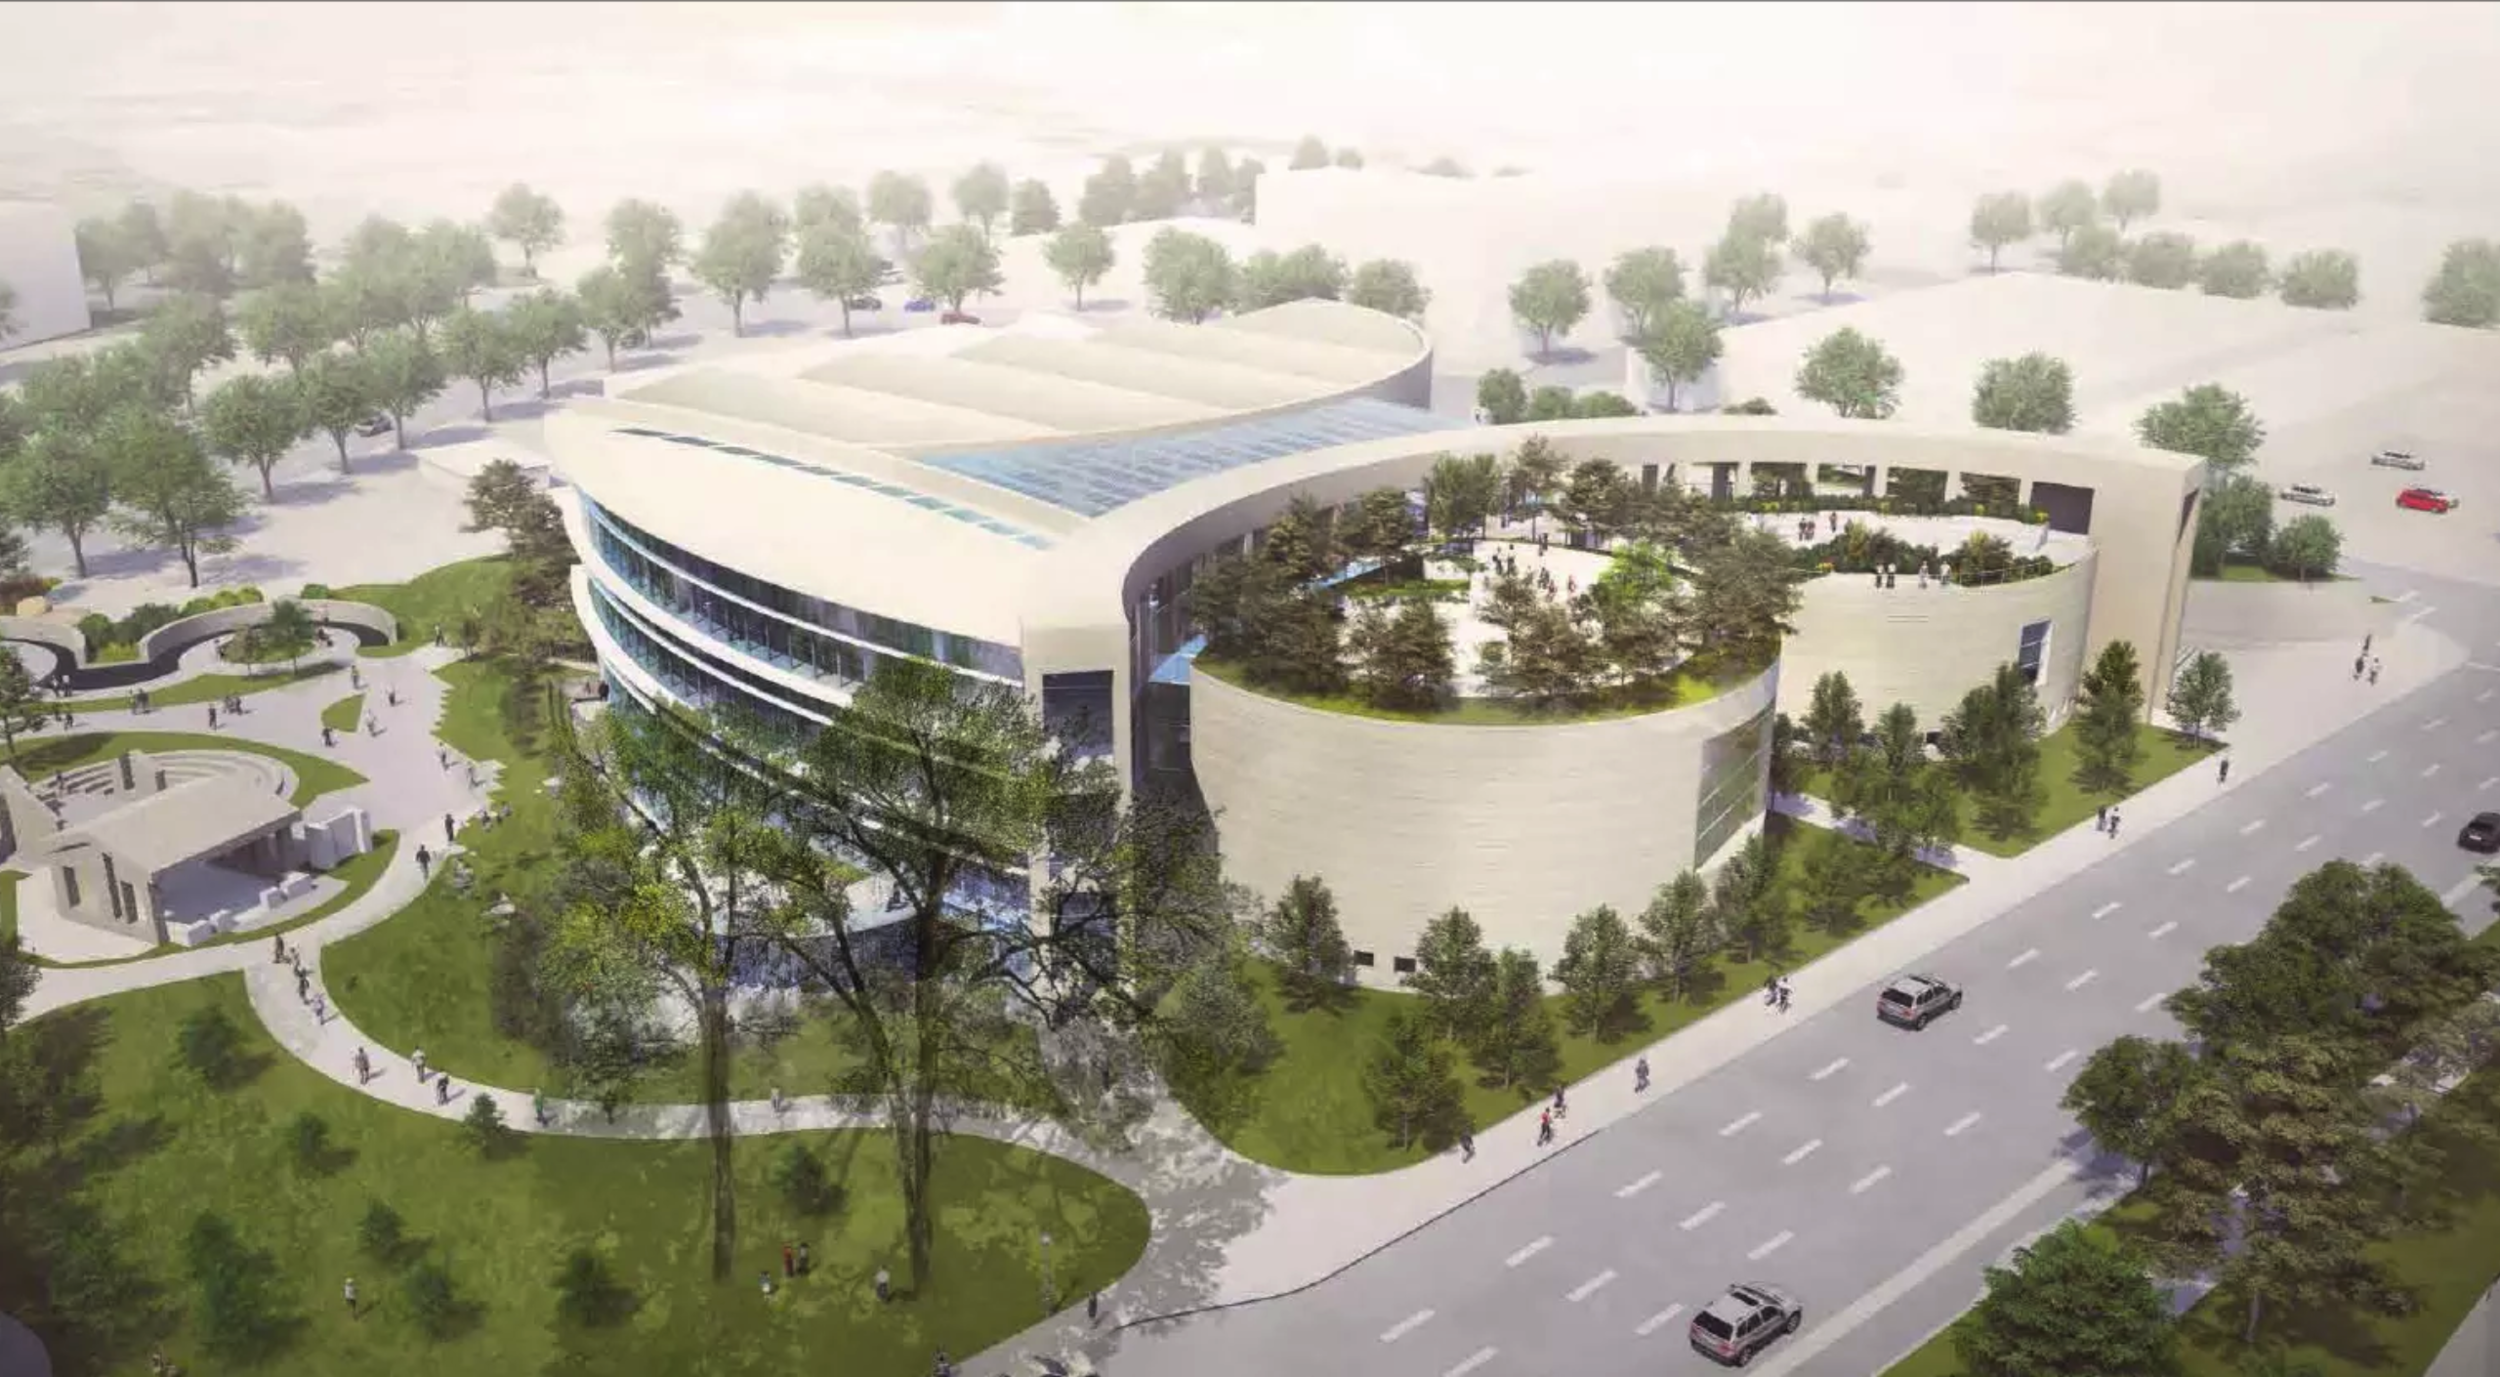 Rendering of the new main library architecture design